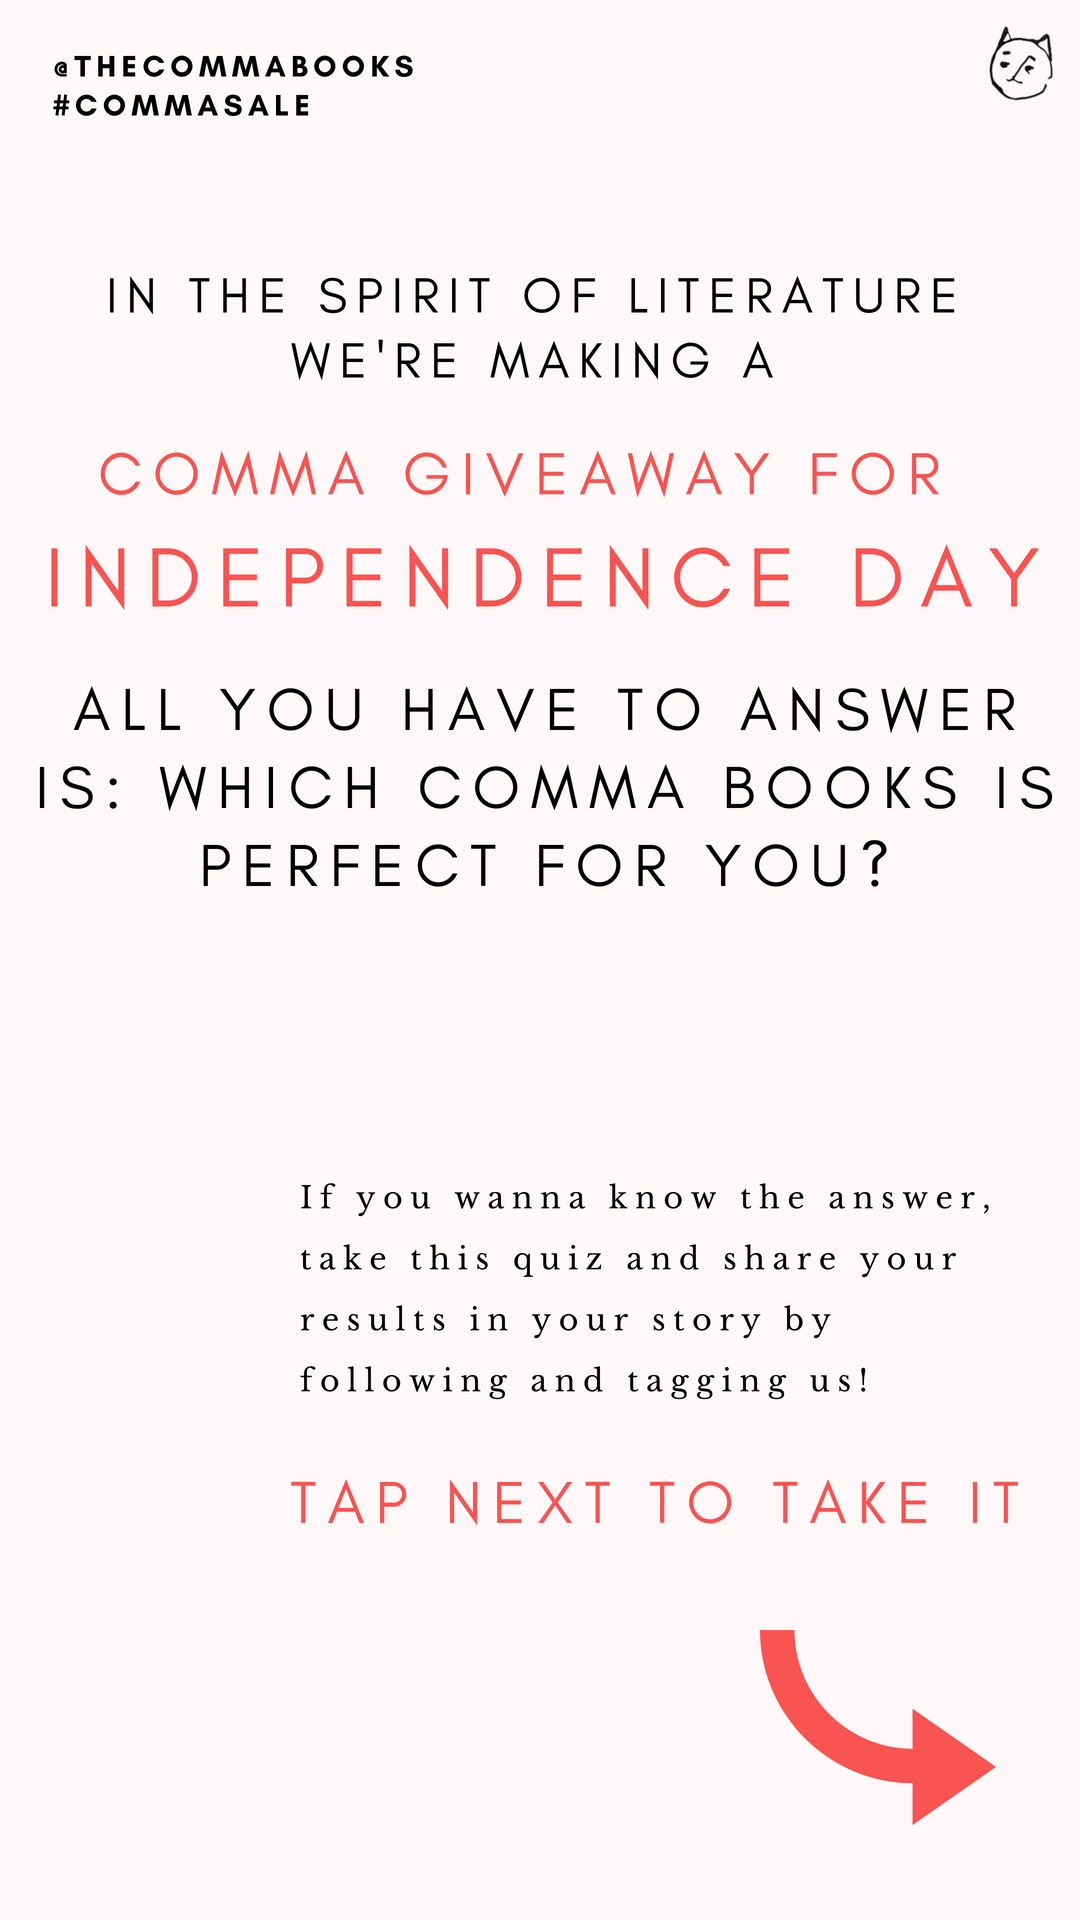 Take the quiz on our instagram (@thecommabooks)! - If you have posted your results, fill in the form to get two guest passes for the next Comma Books event by email.